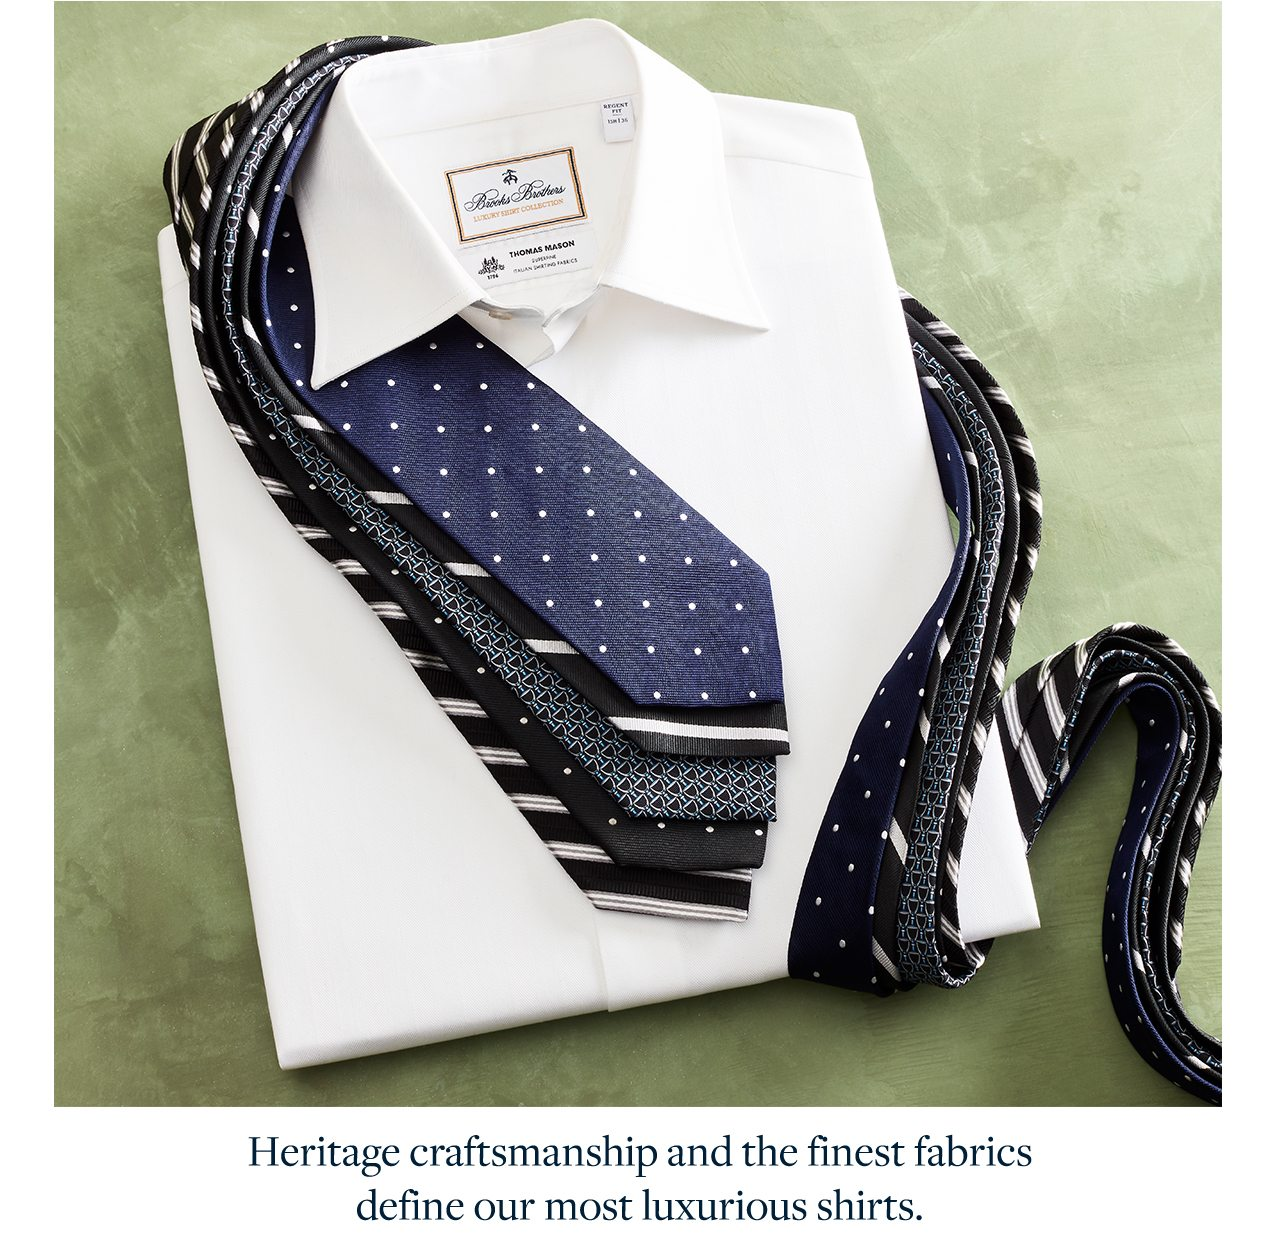 Heritage craftsmanship and the finest fabrics define our most luxurious shirts.